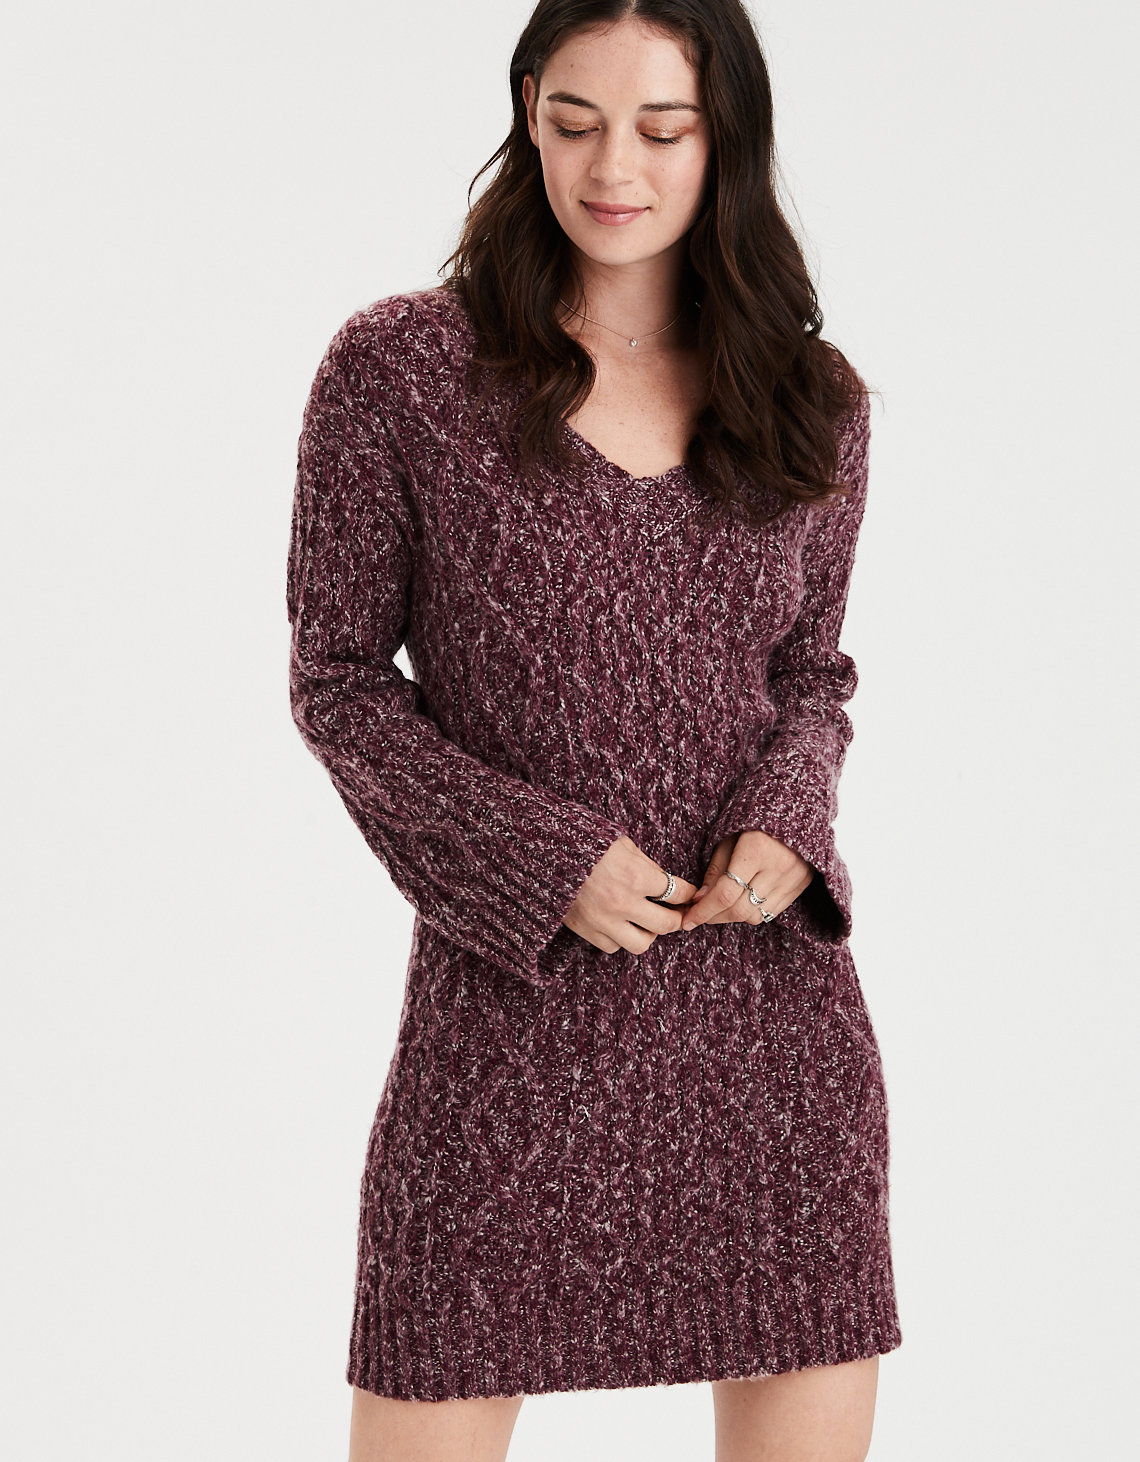 eb449ed5fd93 ... Cable Knit Sweater Dress. Placeholder image. Product Image